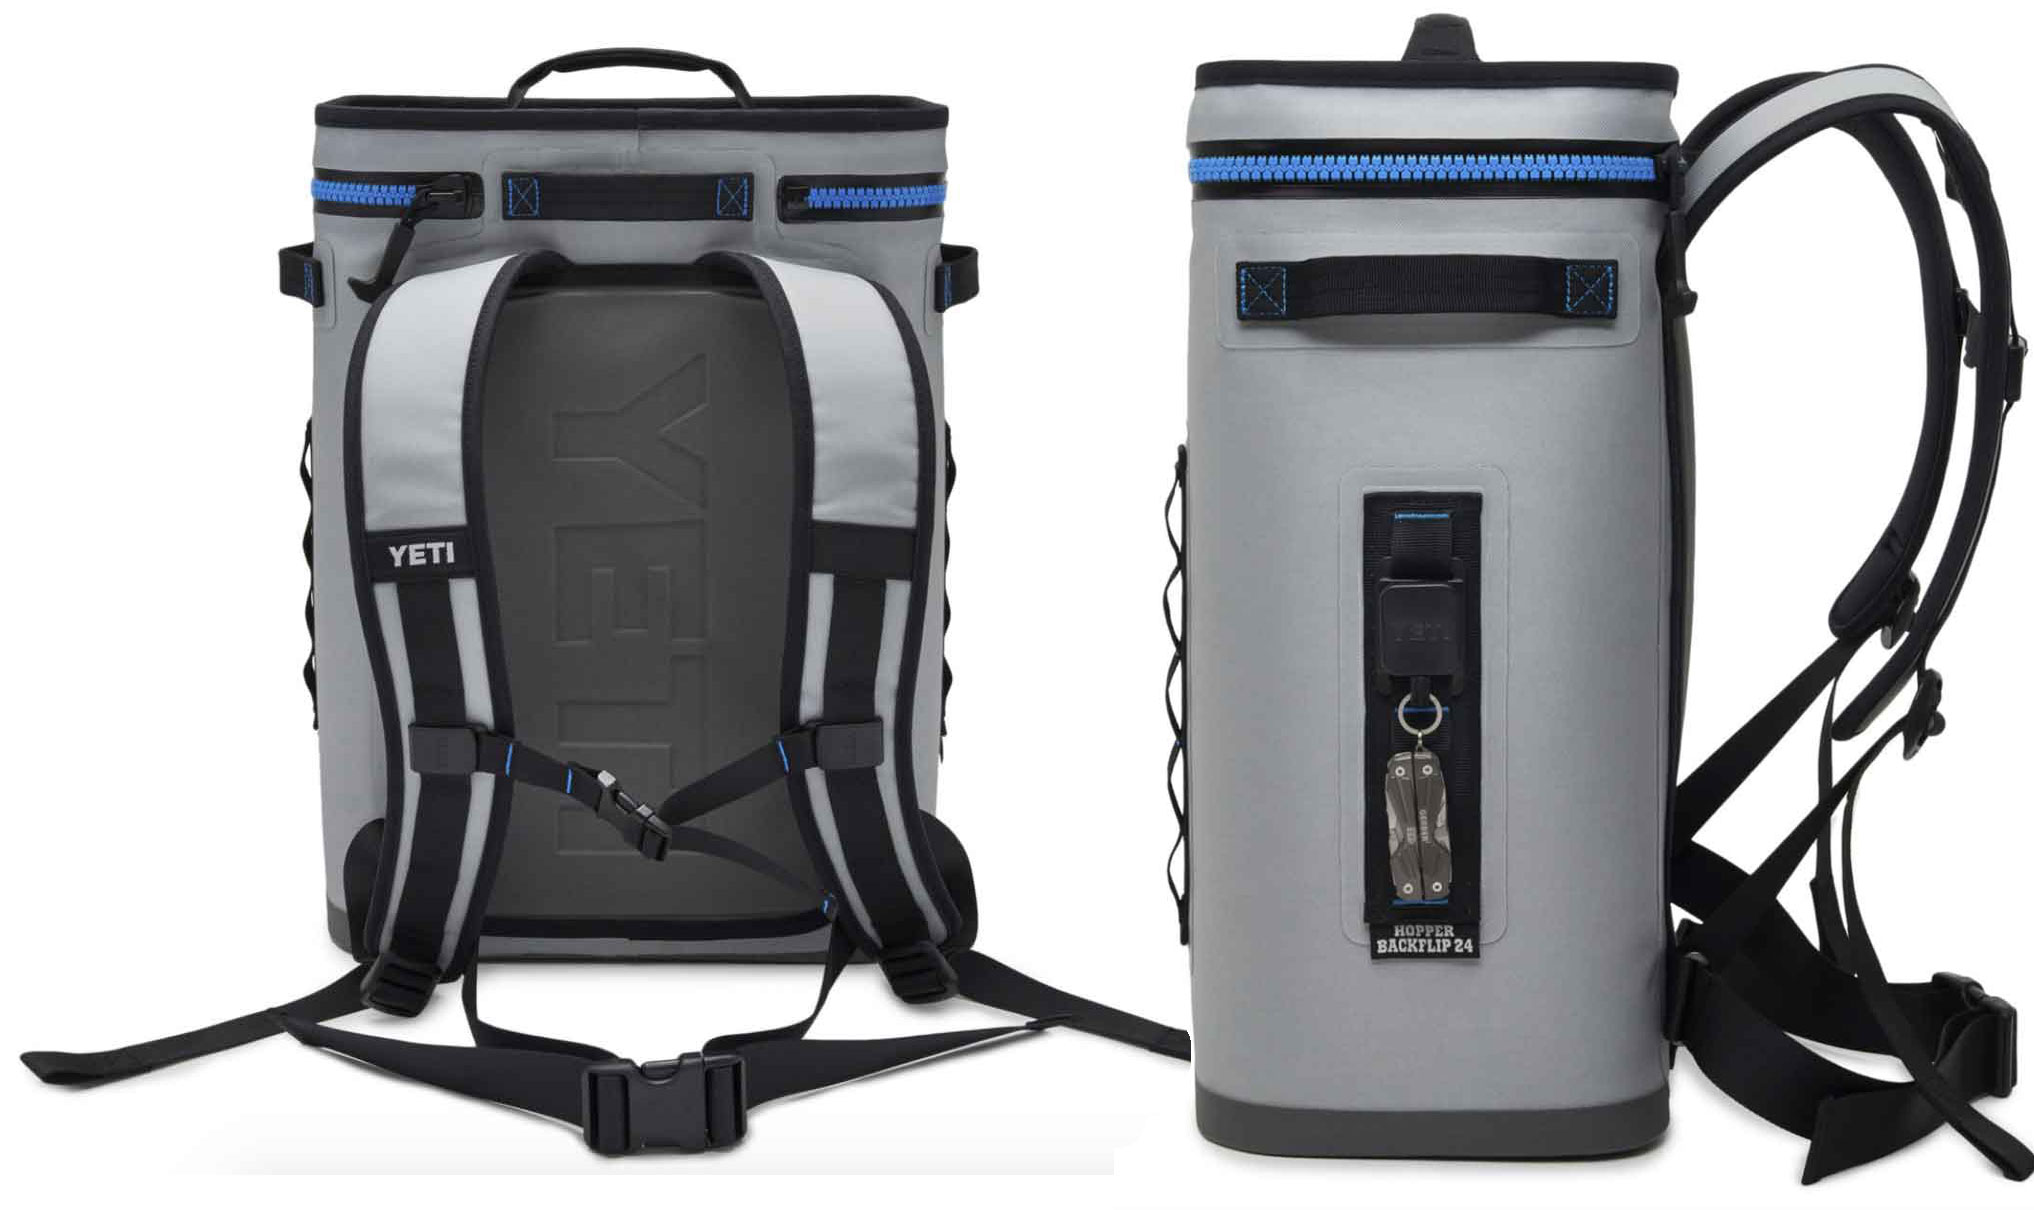 First Look YETI Camp Chair Cooler Backpack  GearJunkie